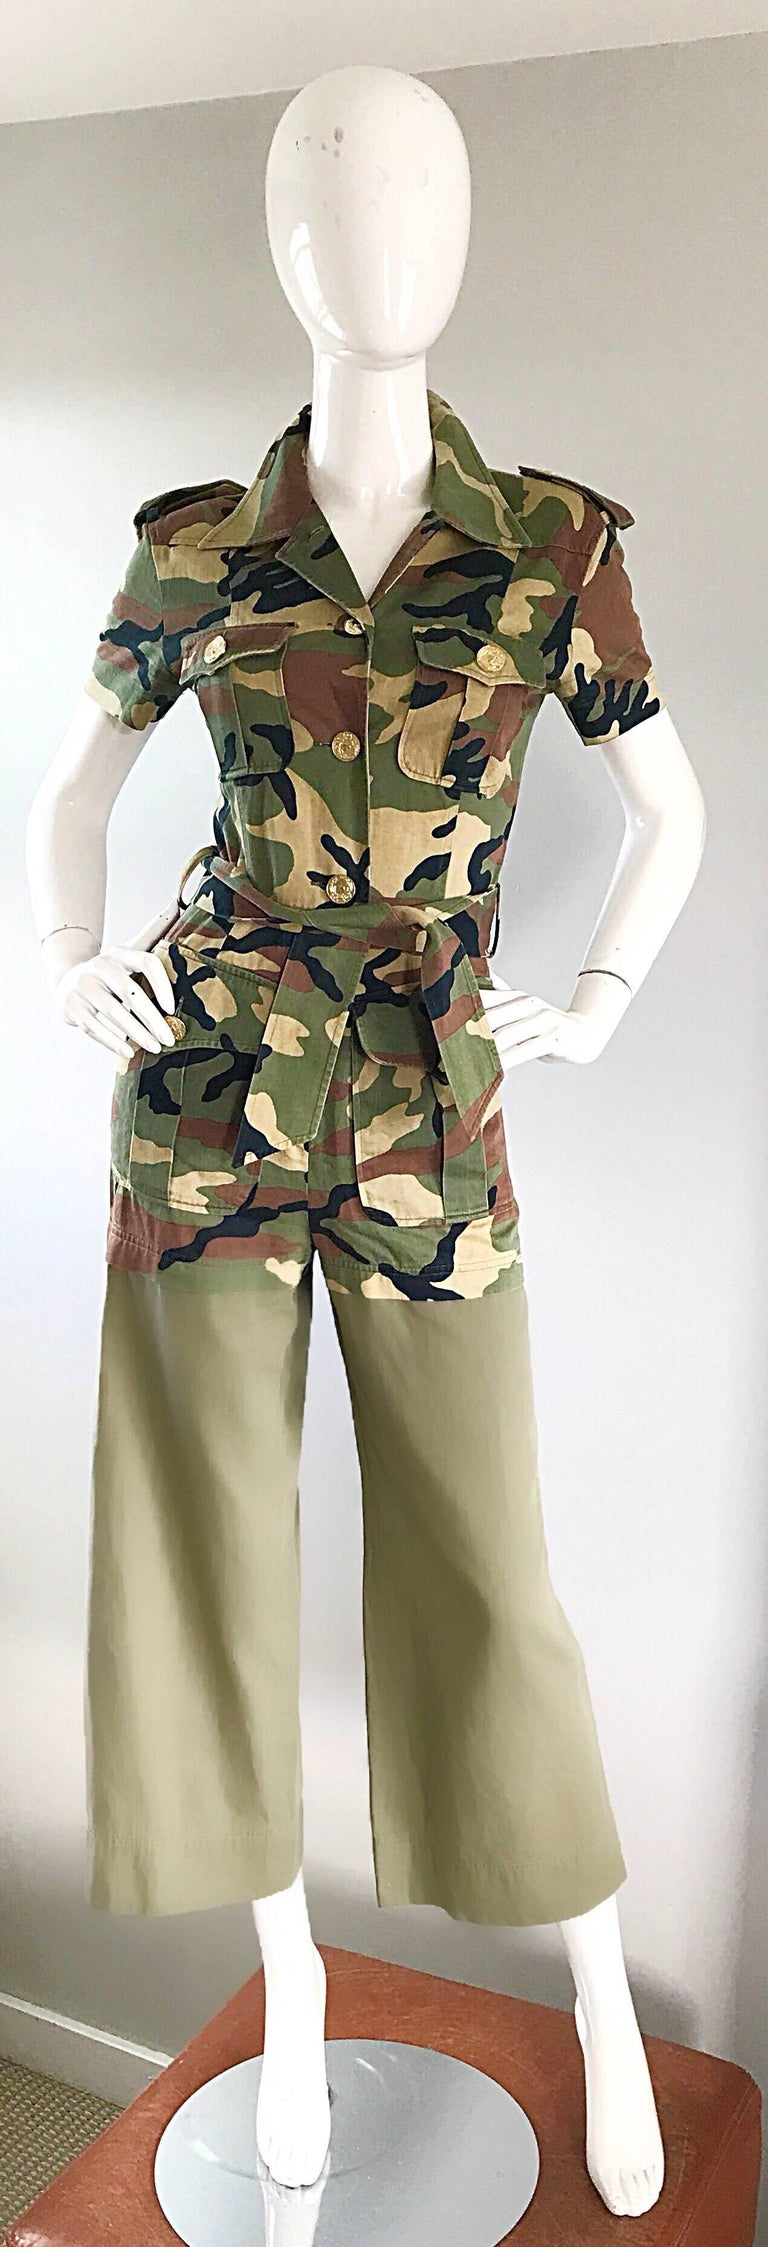 Vintage Moschino Camouflage 1990s Belted 90s Rare Safari Cargo Jumpsuit Romper For Sale 4